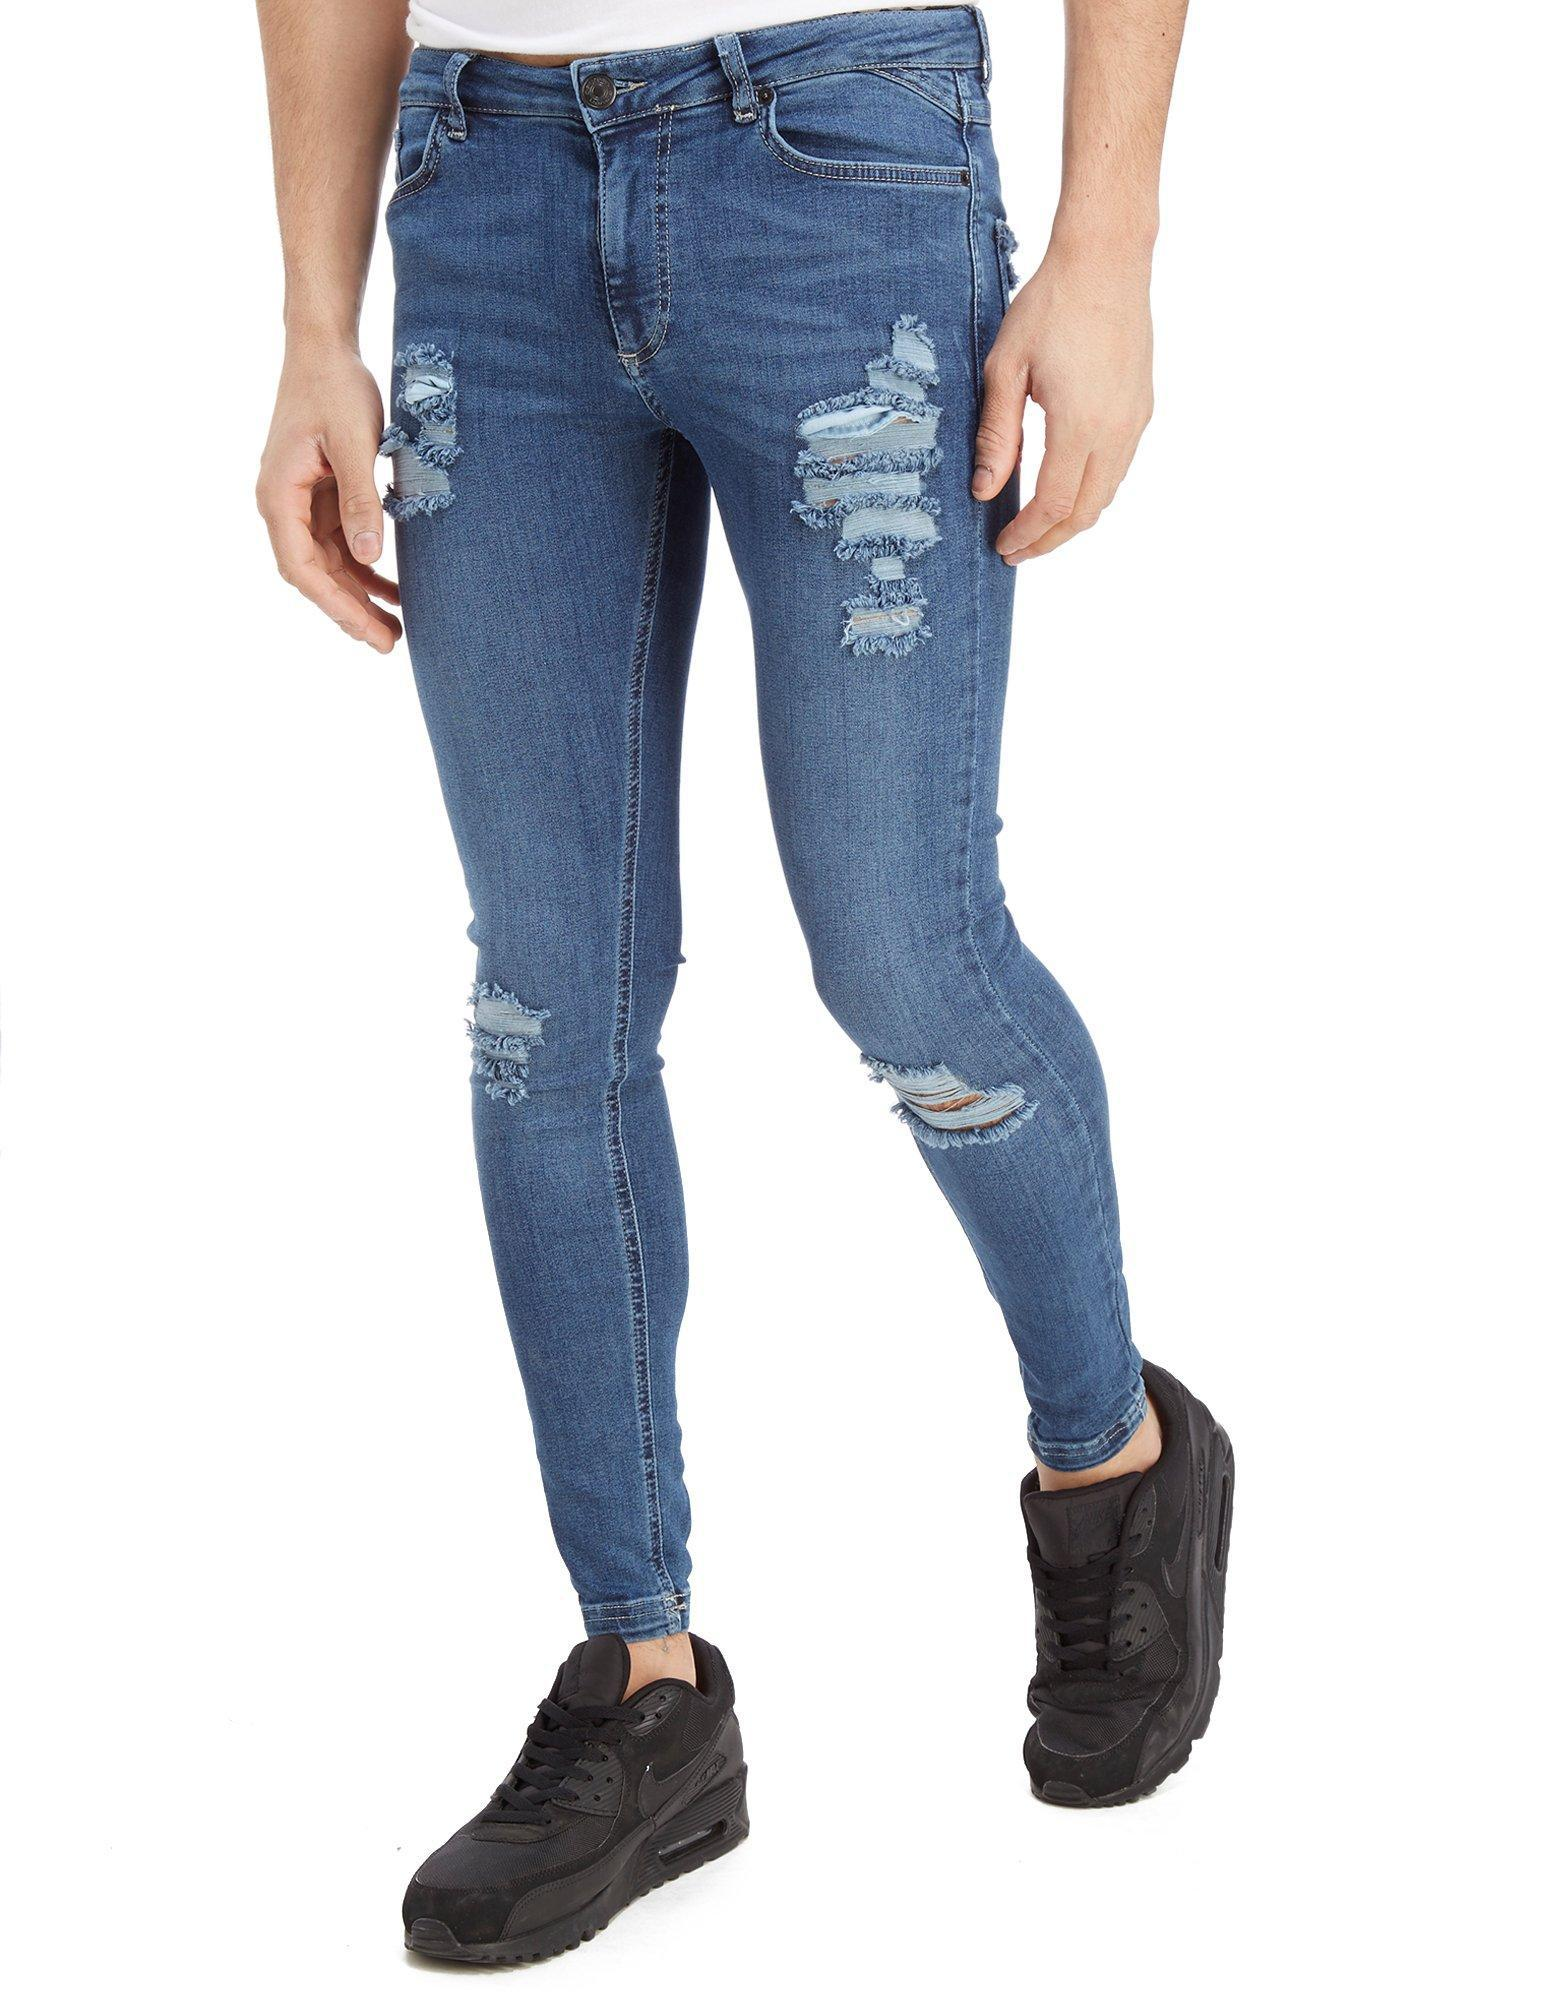 11 Degrees Ripped Denim Jeans in Blue for Men - Save 60.0% - Lyst 585946a60456